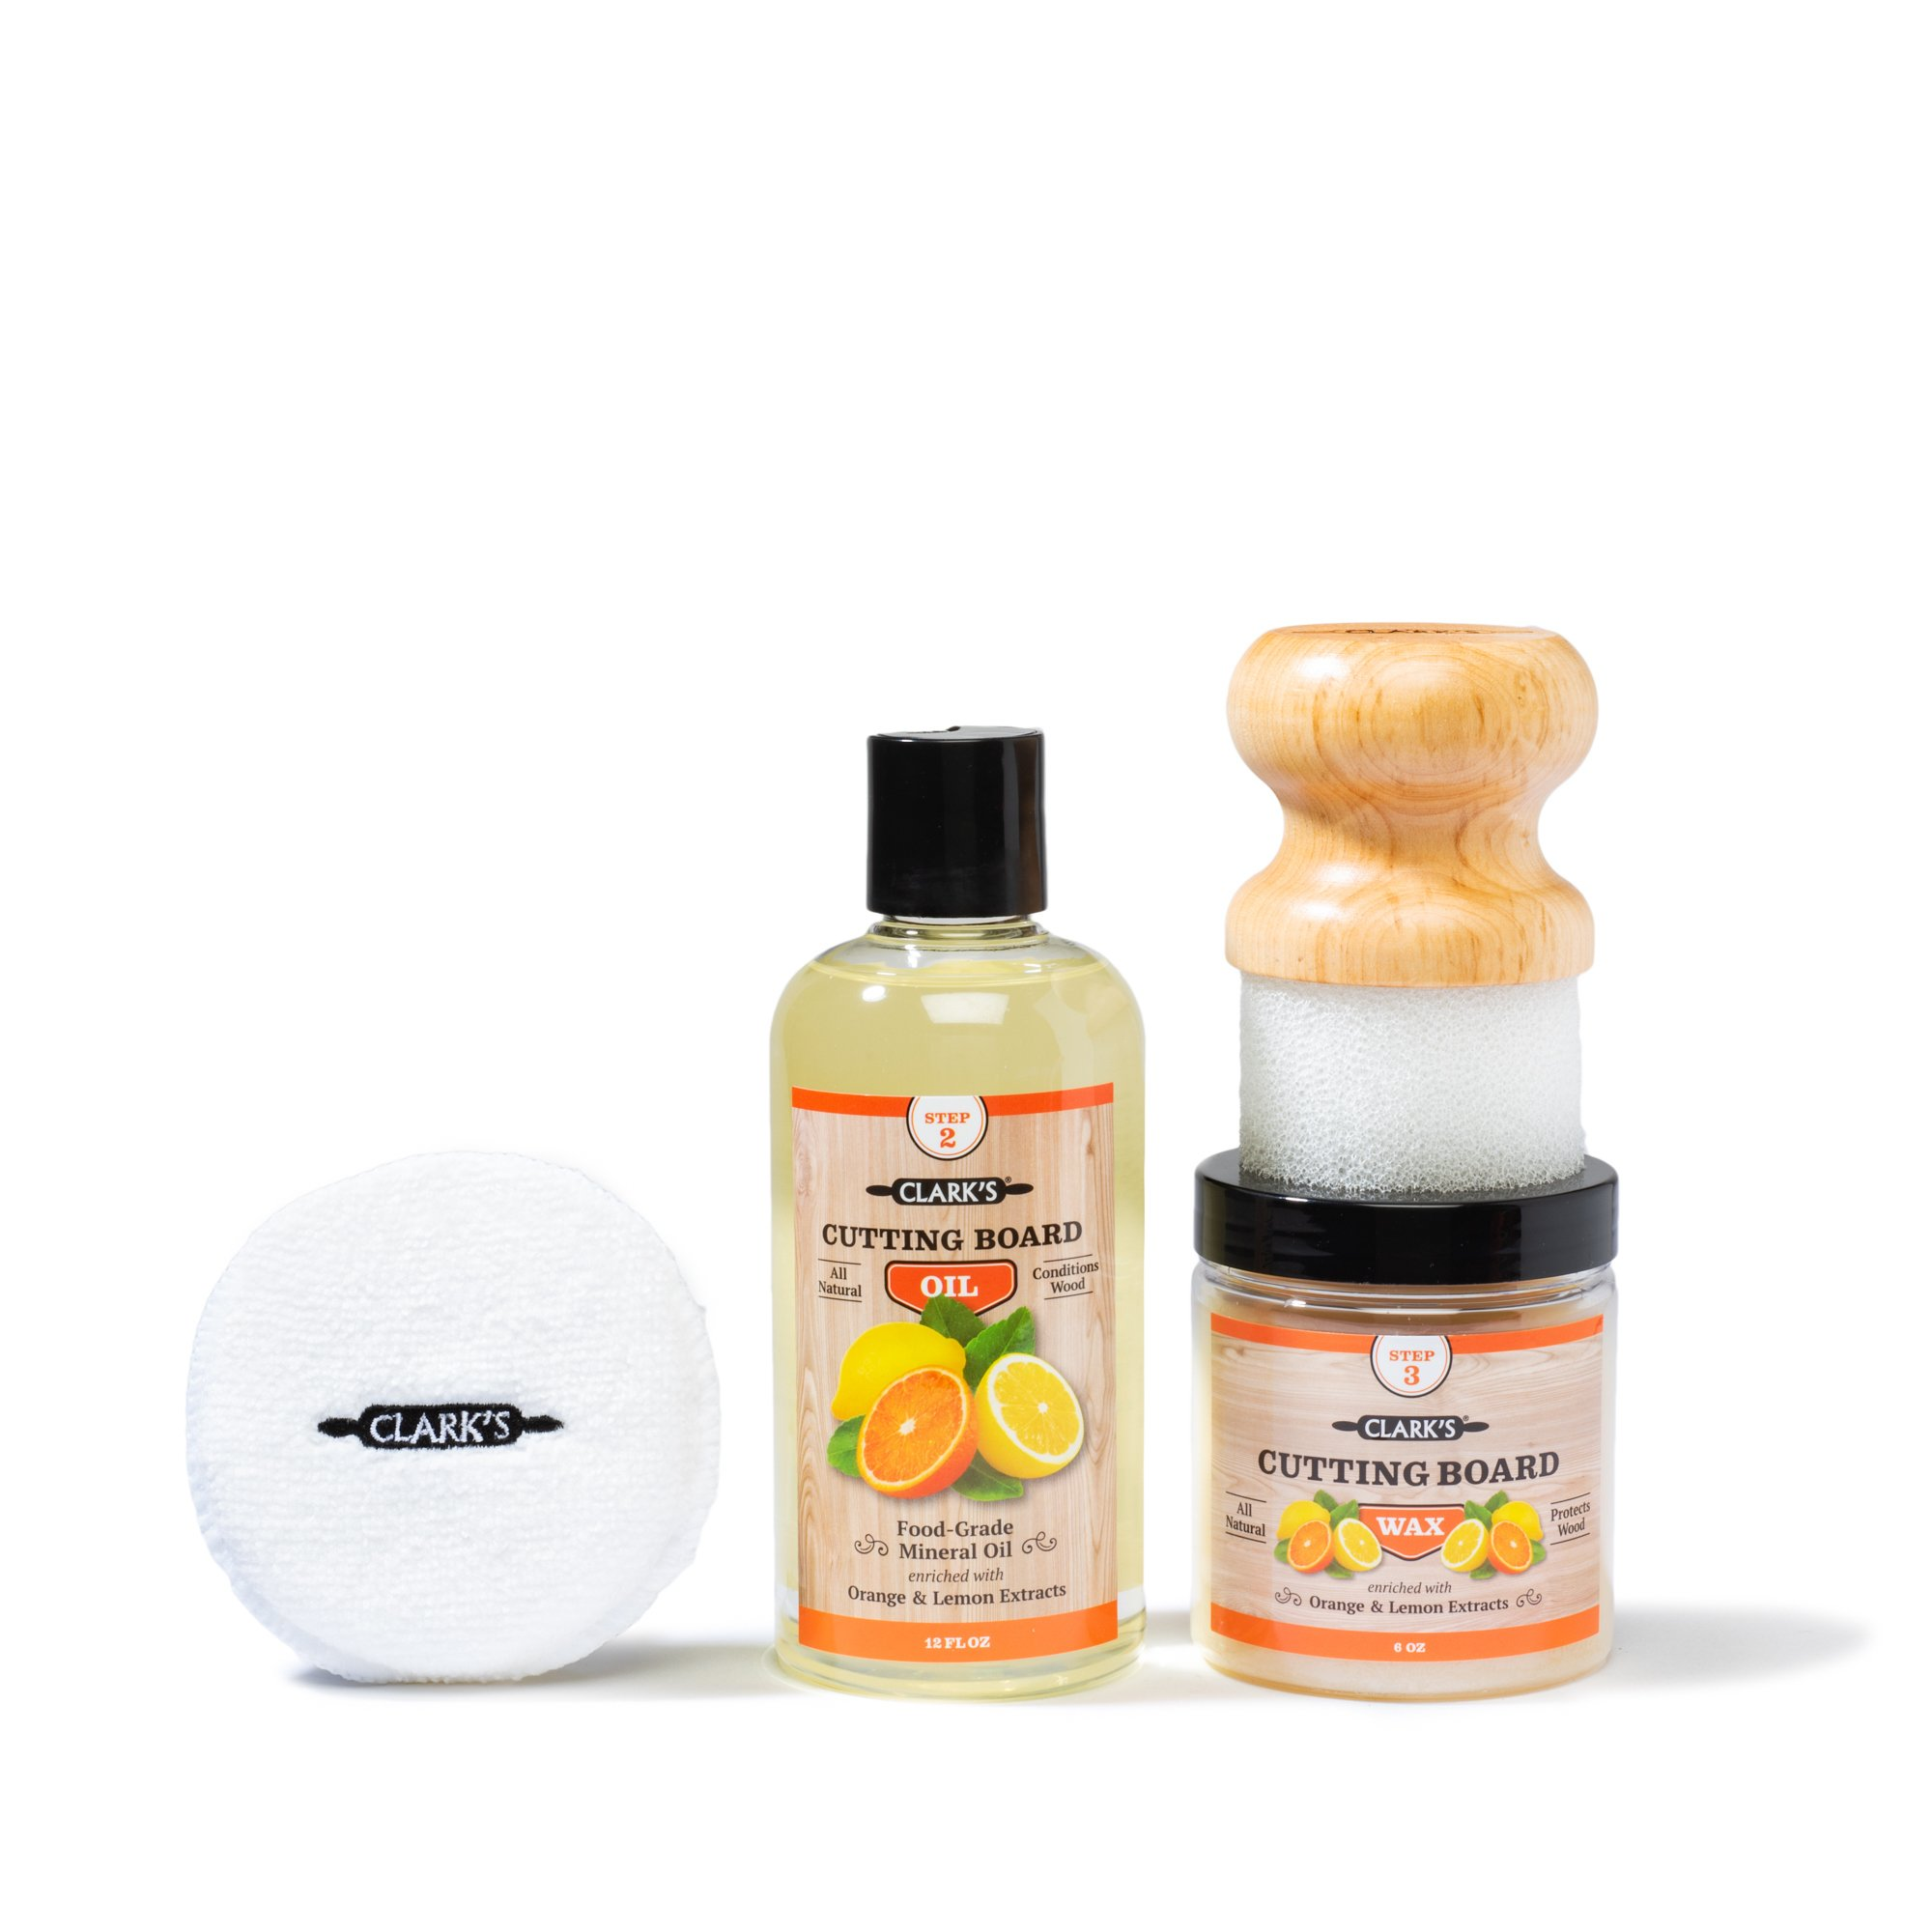 CLARK'S Cutting Board Finishing Kit | Orange-Lemon Scent | CLARK'S Cutting Board Oil (12 oz) - Cutting Board Wax (6oz) - Small Applicator - Buffing Pad by CLARKS